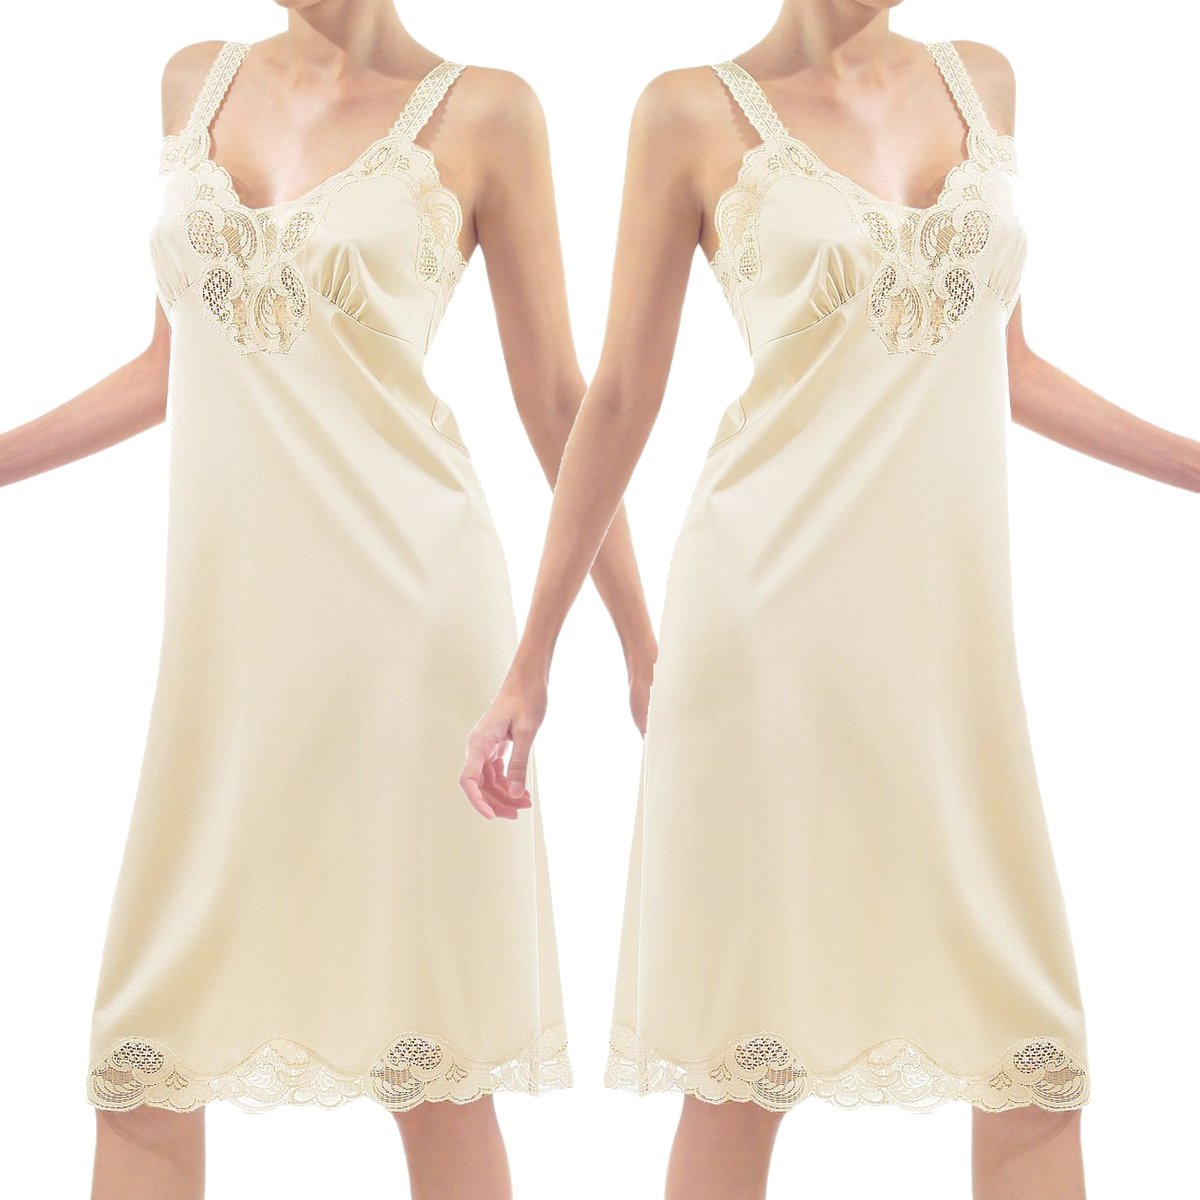 Under Moments Antistatic Vintage-style Full Slip w/Lace Details Color Combo Pack 2012